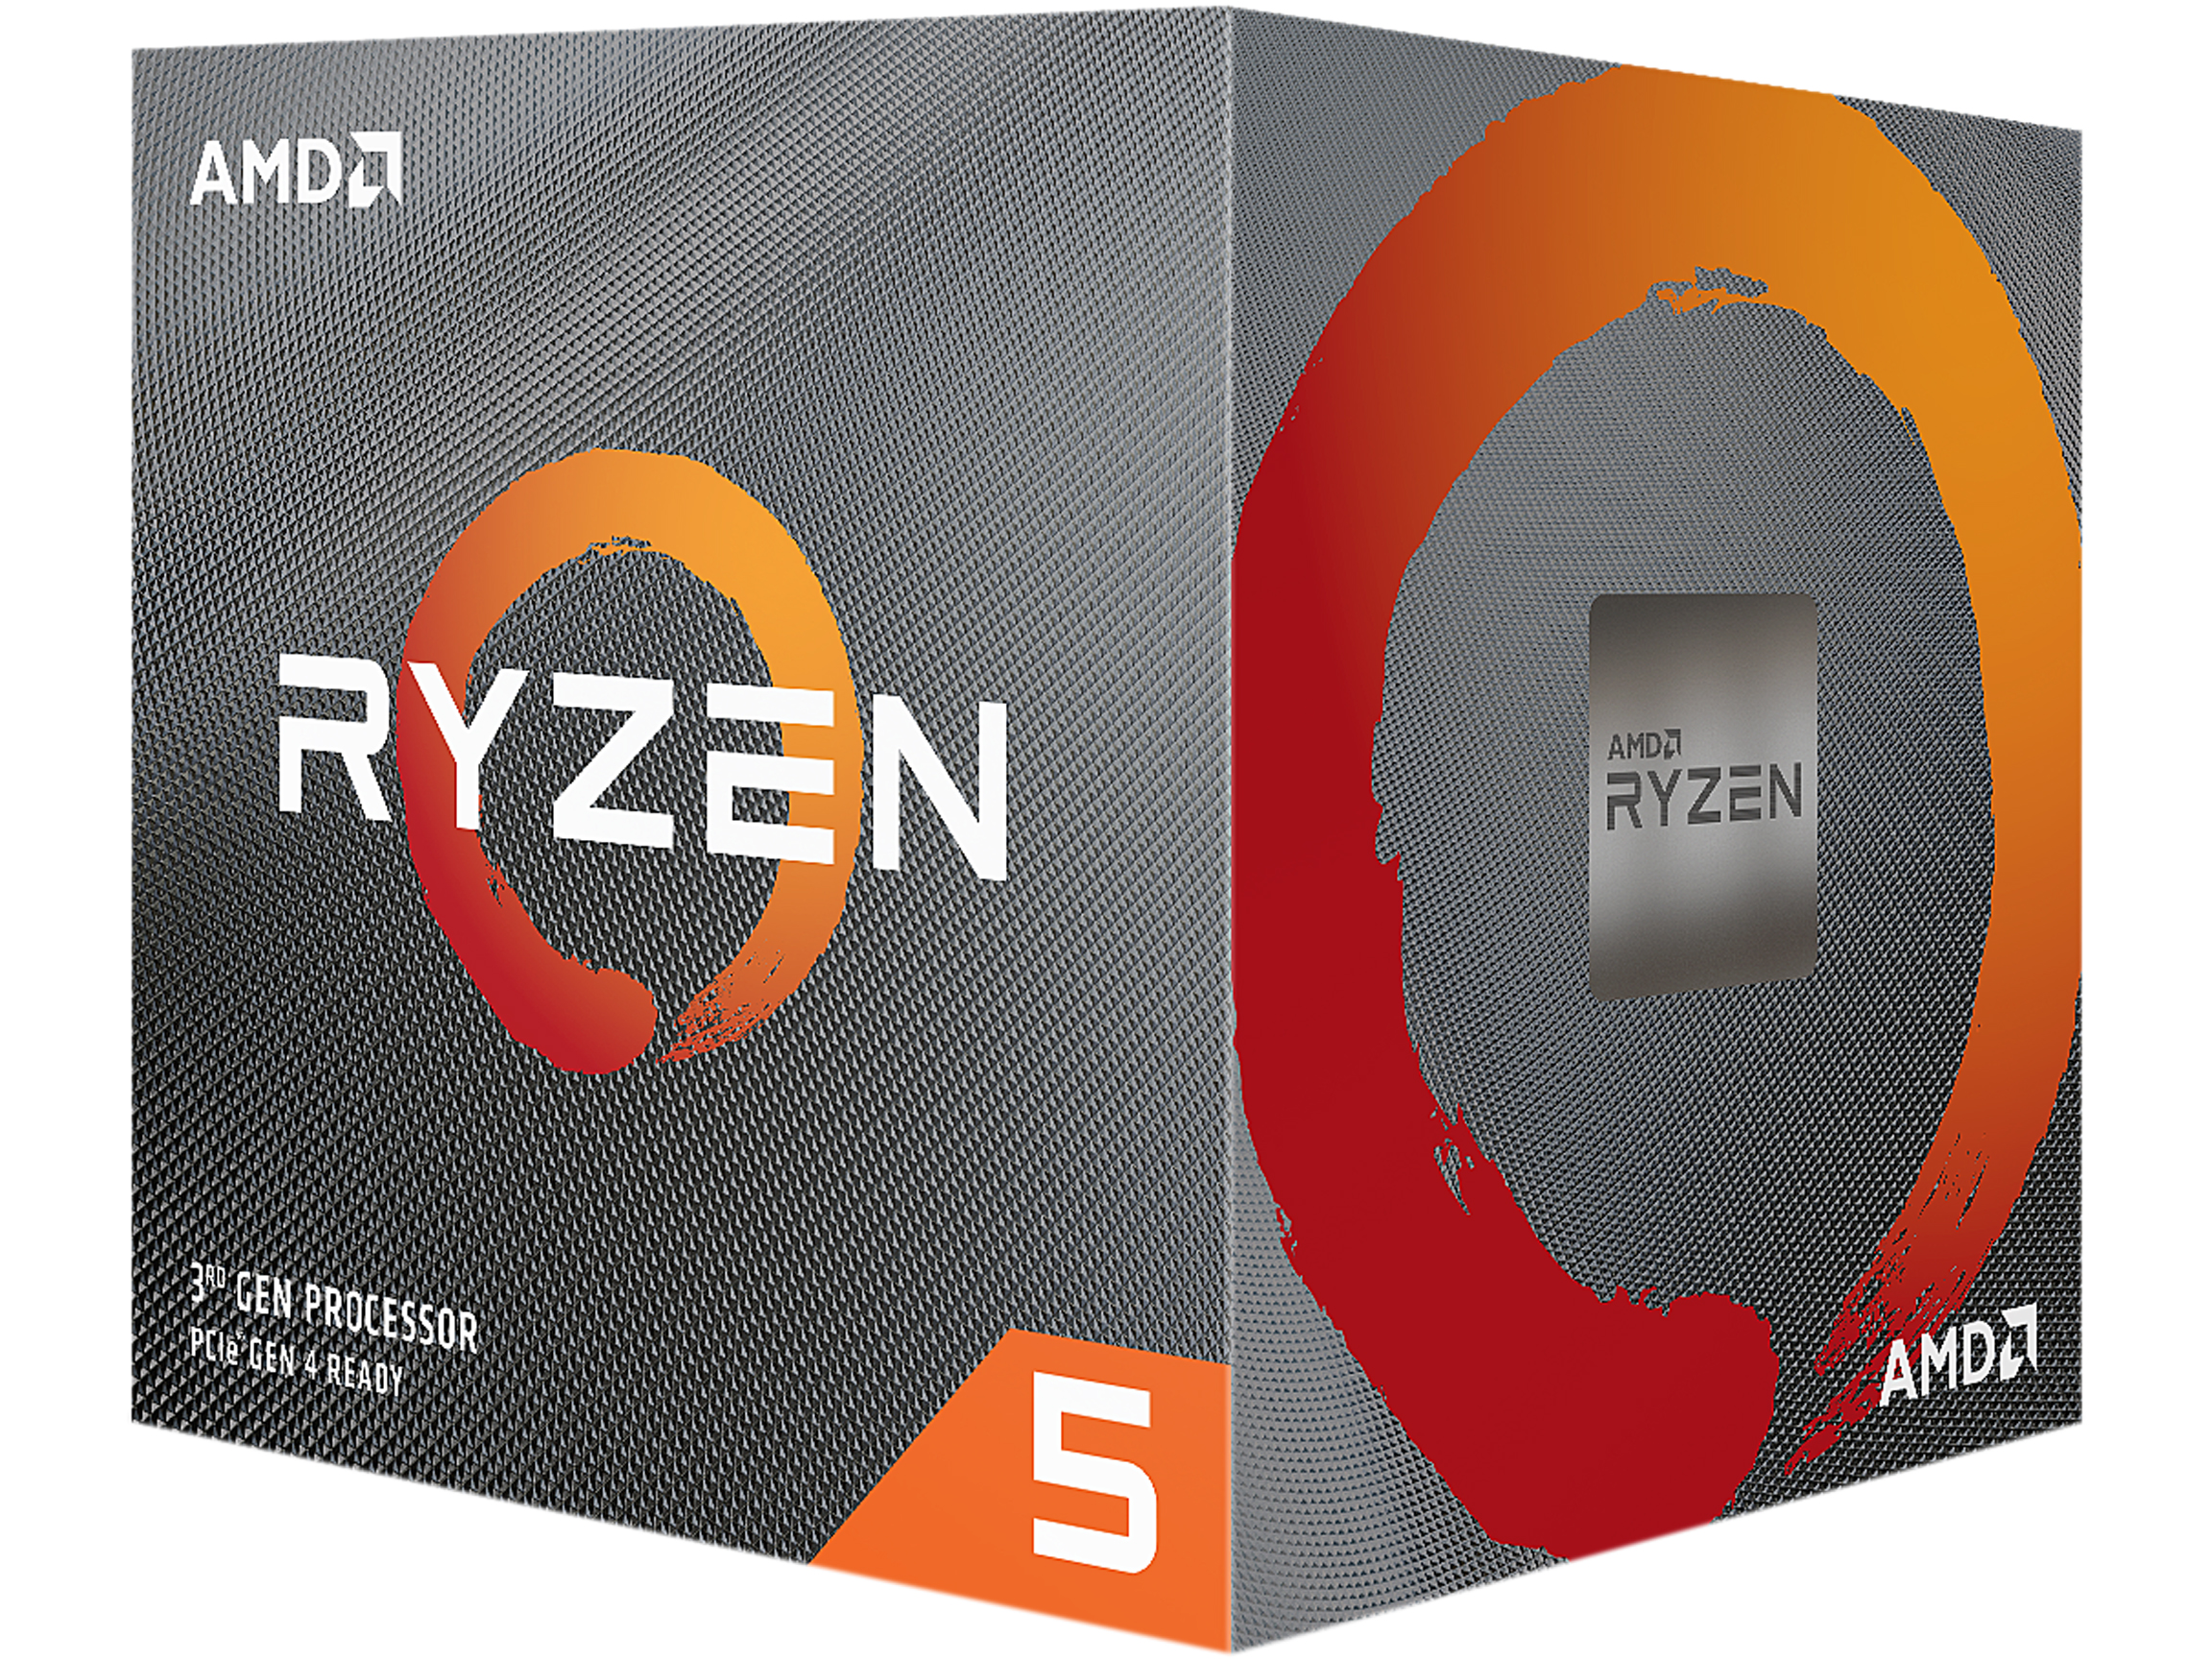 AMD Ryzen 5 2600 6-Core 3.4GHz Socket AM4 Desktop Processor